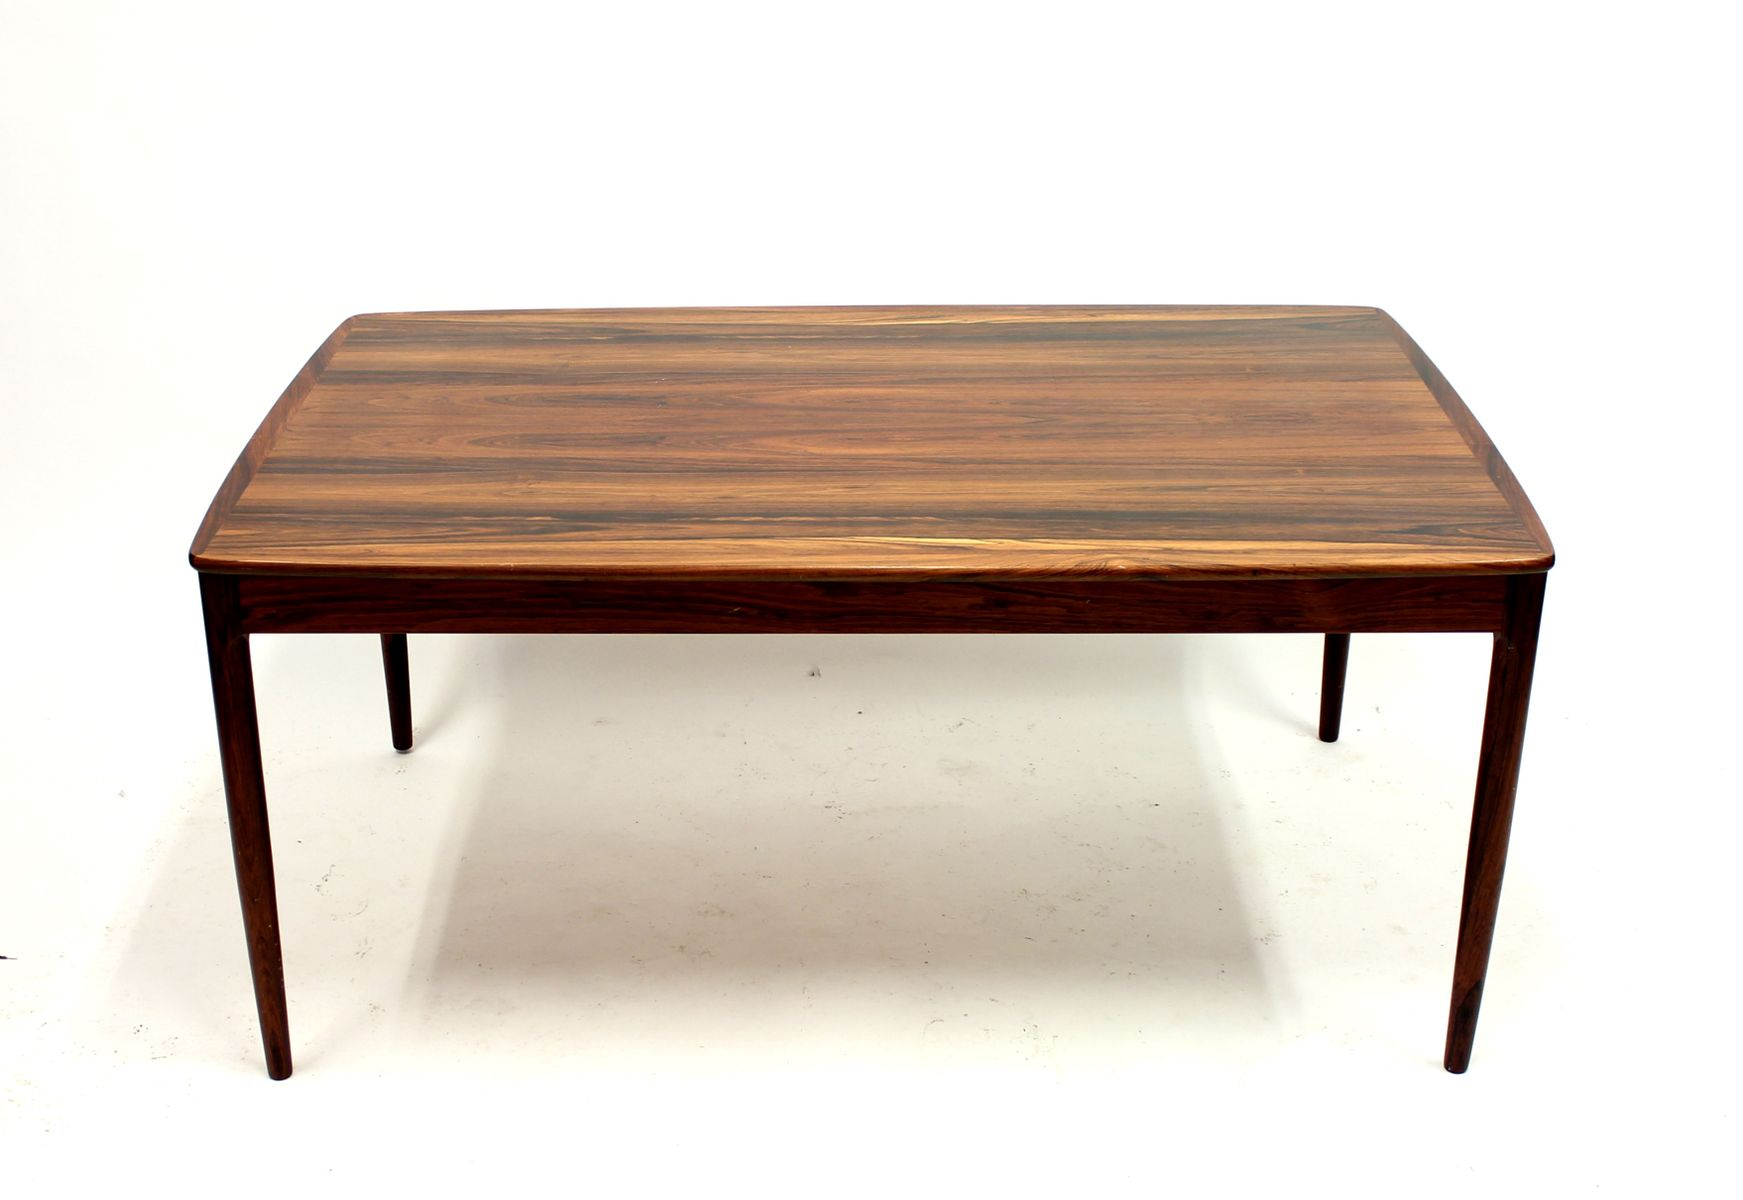 Rosewood Coffee Table By Yngvar Sandstr M For Seffle M Belfabrik 1960s For Sale At Pamono